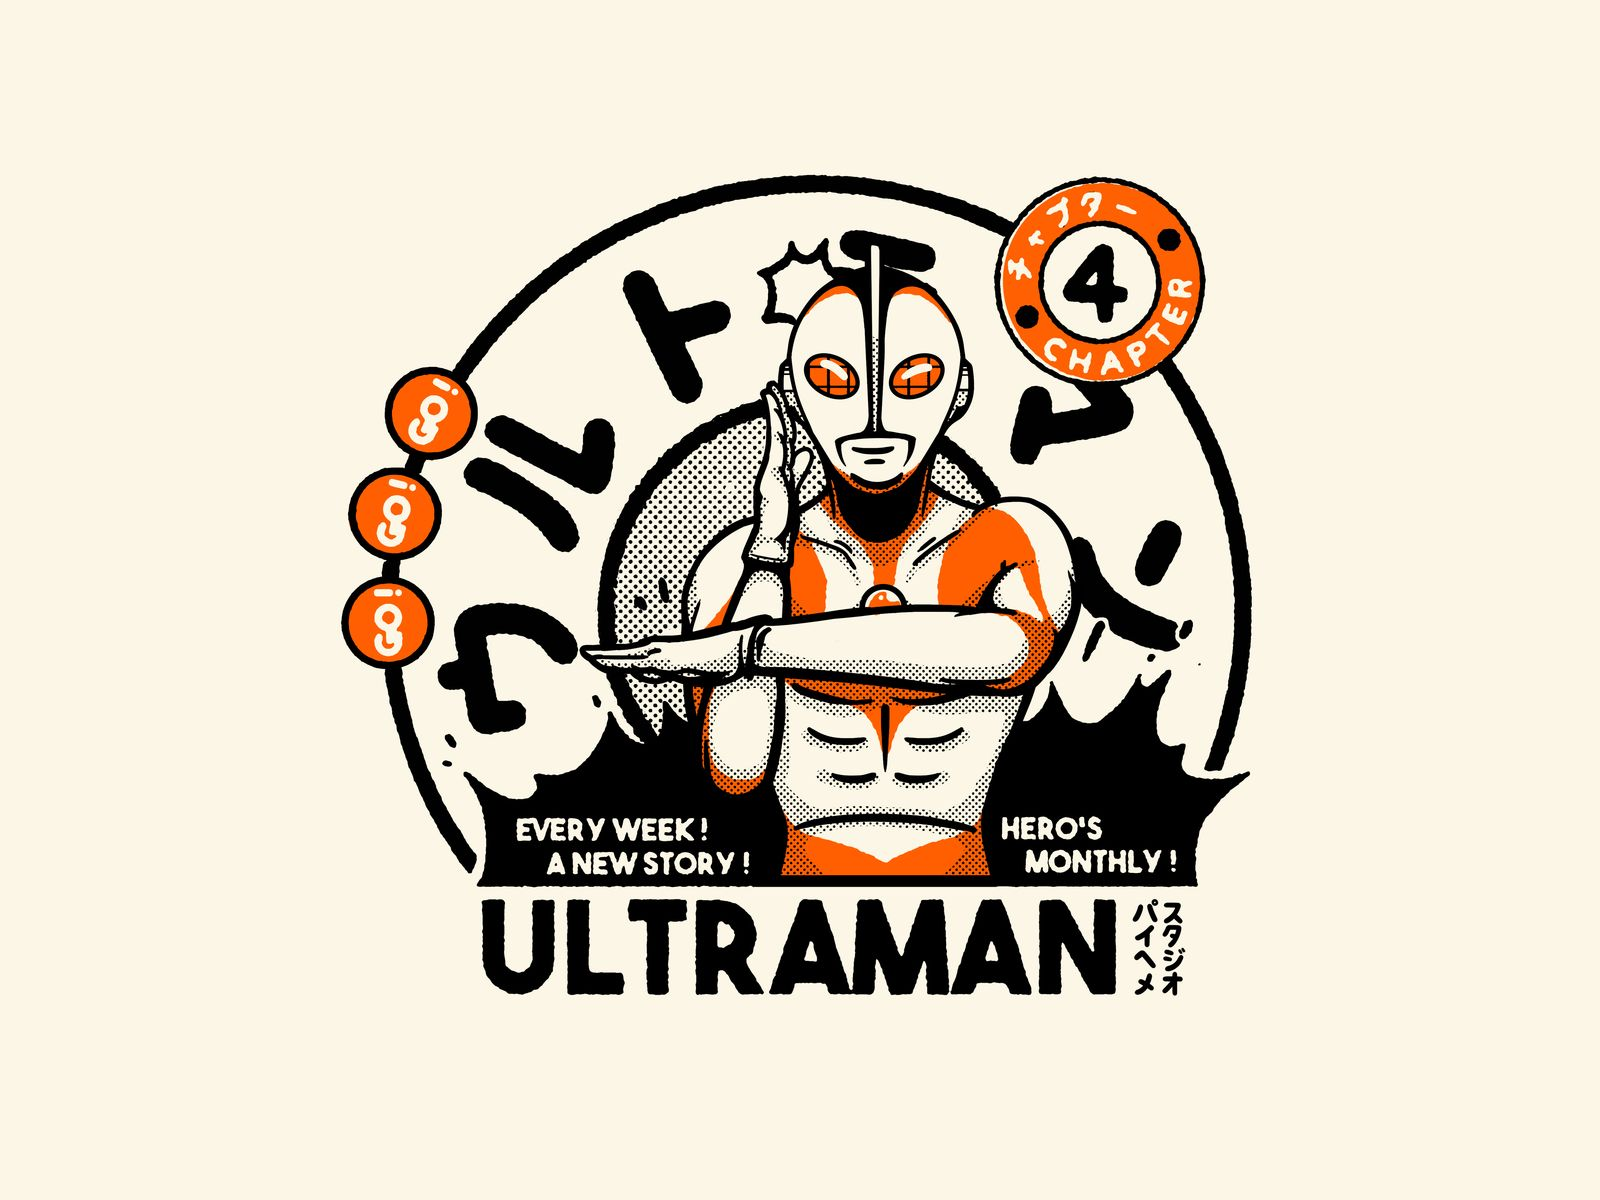 9cfcd8d33 Ultraman ! ultraman typography logo manga japan branding graphic artists  retro design estampe japanese graphic artist graphic art graphic design  vintage ...